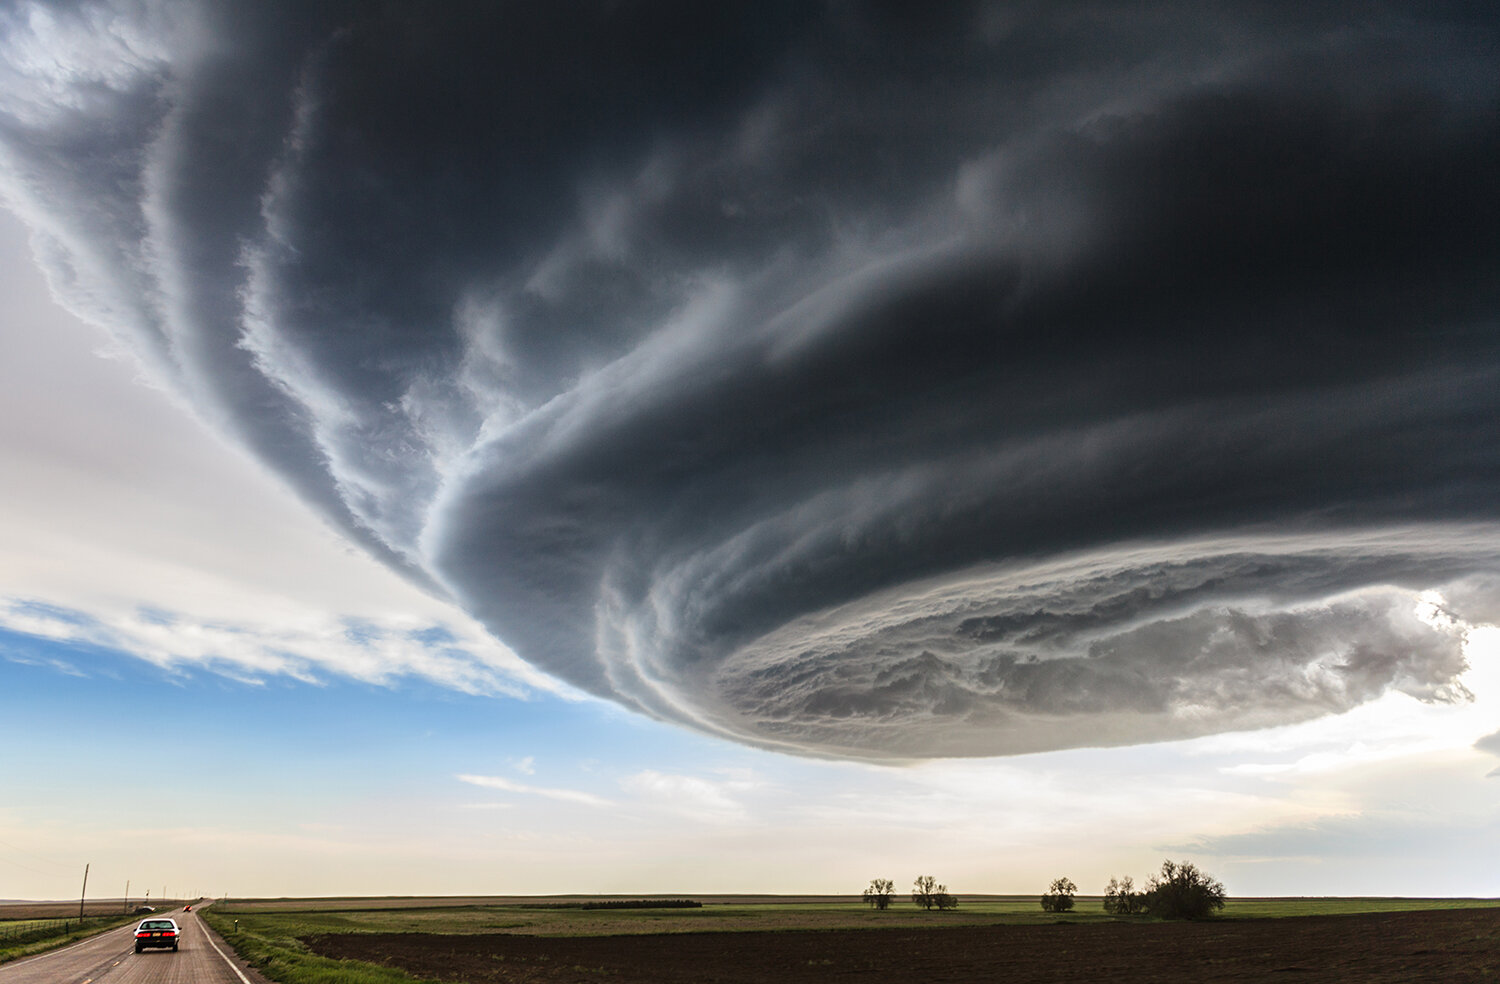 Marko Korosec,  Supercell Storm Cloud , Julesburg Colorado, National Geographic